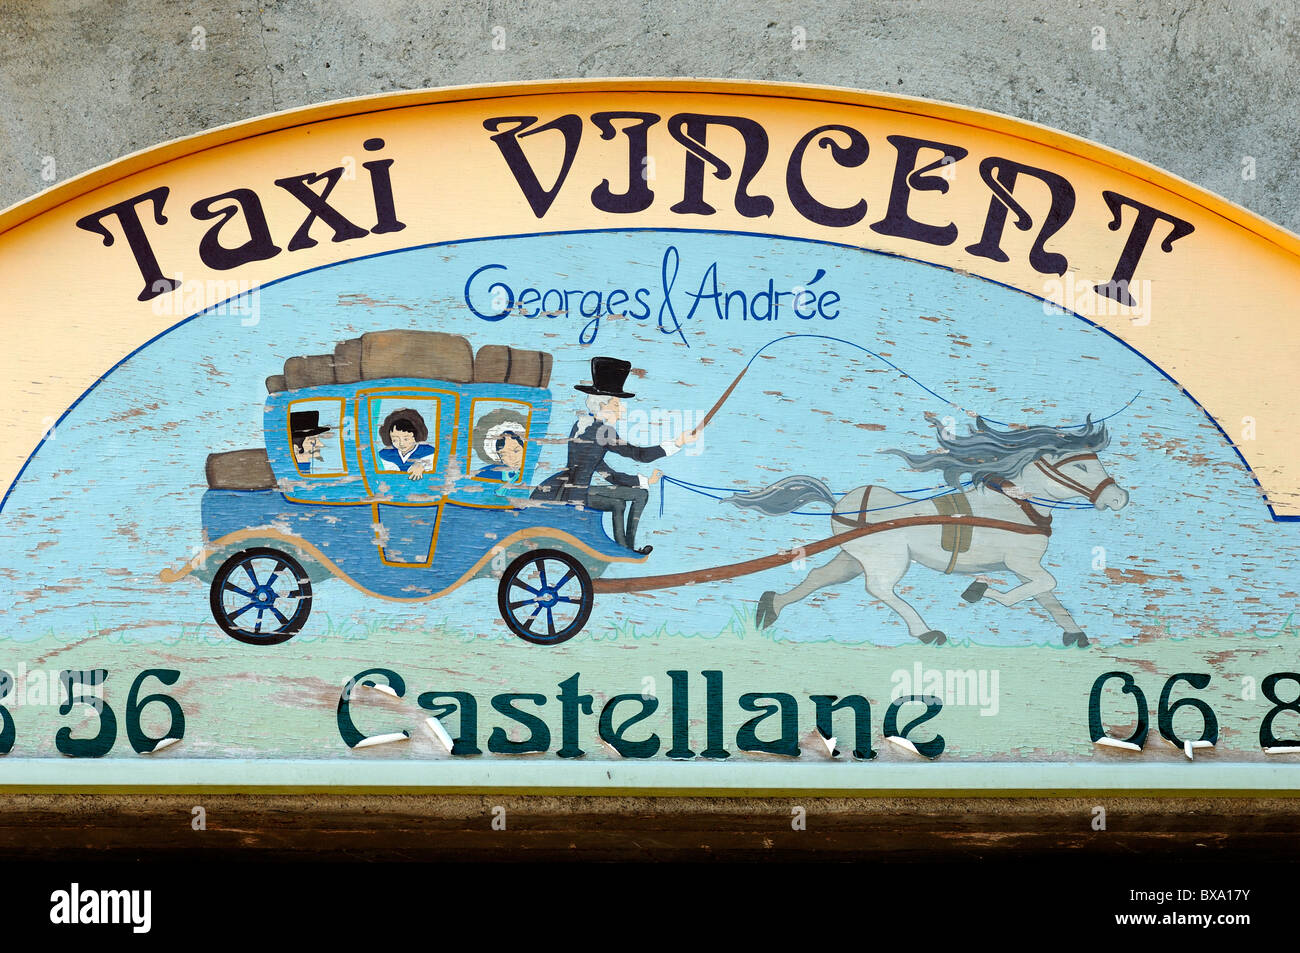 Painted Taxi Sign or Advert Showing Horses and Hackney Carriage, Castellane, Alpes-de-Haute-Provence, Provence, - Stock Image